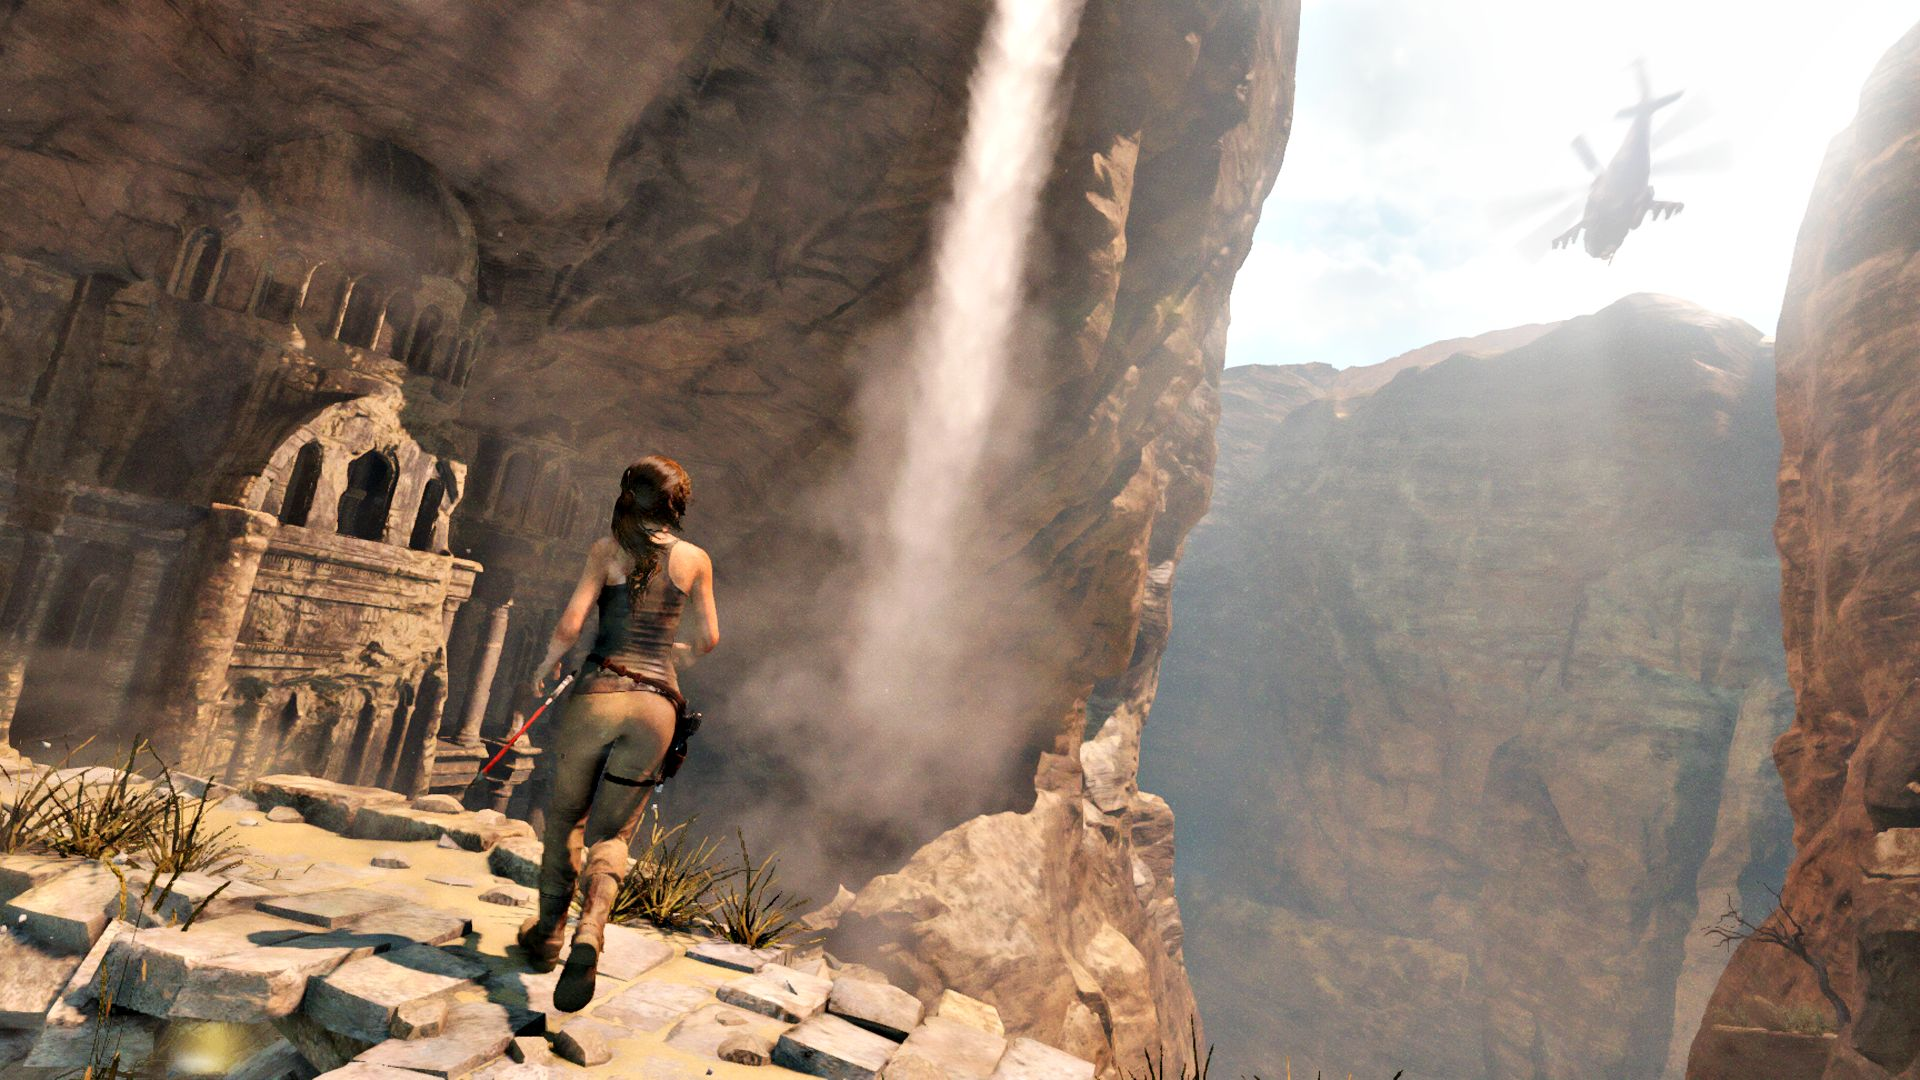 New Rise of the Tomb Raider 1080p Xbox One Screenshots Show Deadly